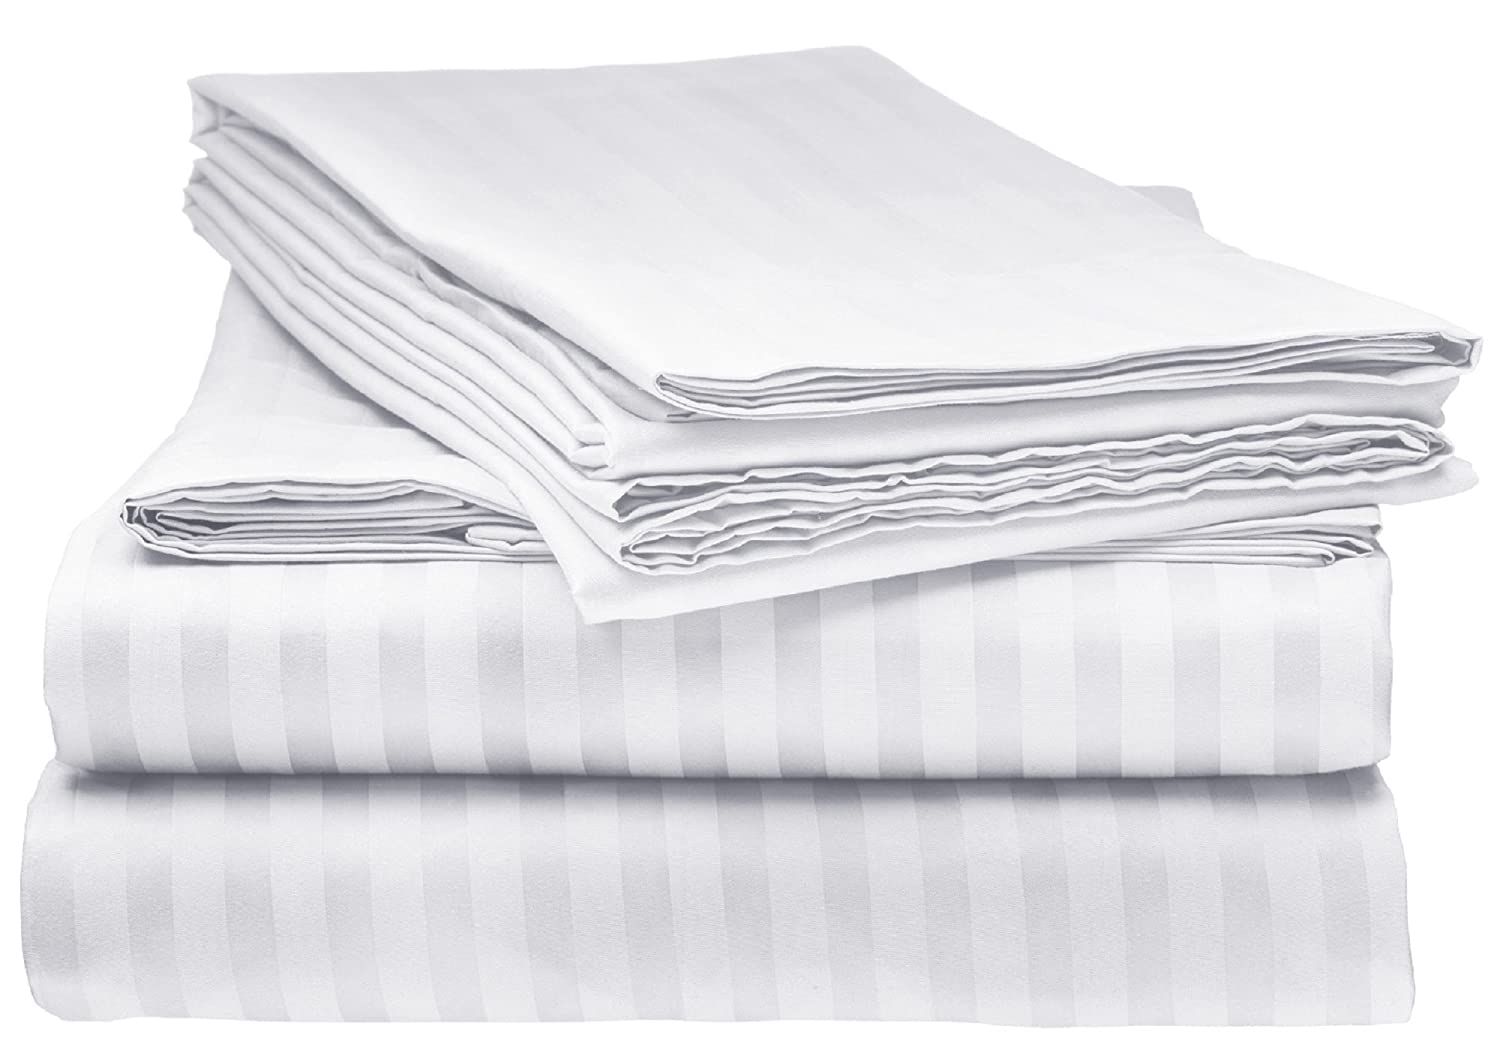 BELLA KLINE BEDDING 1800 Series 4 pc Bed sheet set with pillowcases HYPOALLERGENIC, 1 soft silky luxurious feel, fitted and flat sheets LIFETIME - TWIN Size, WHITE